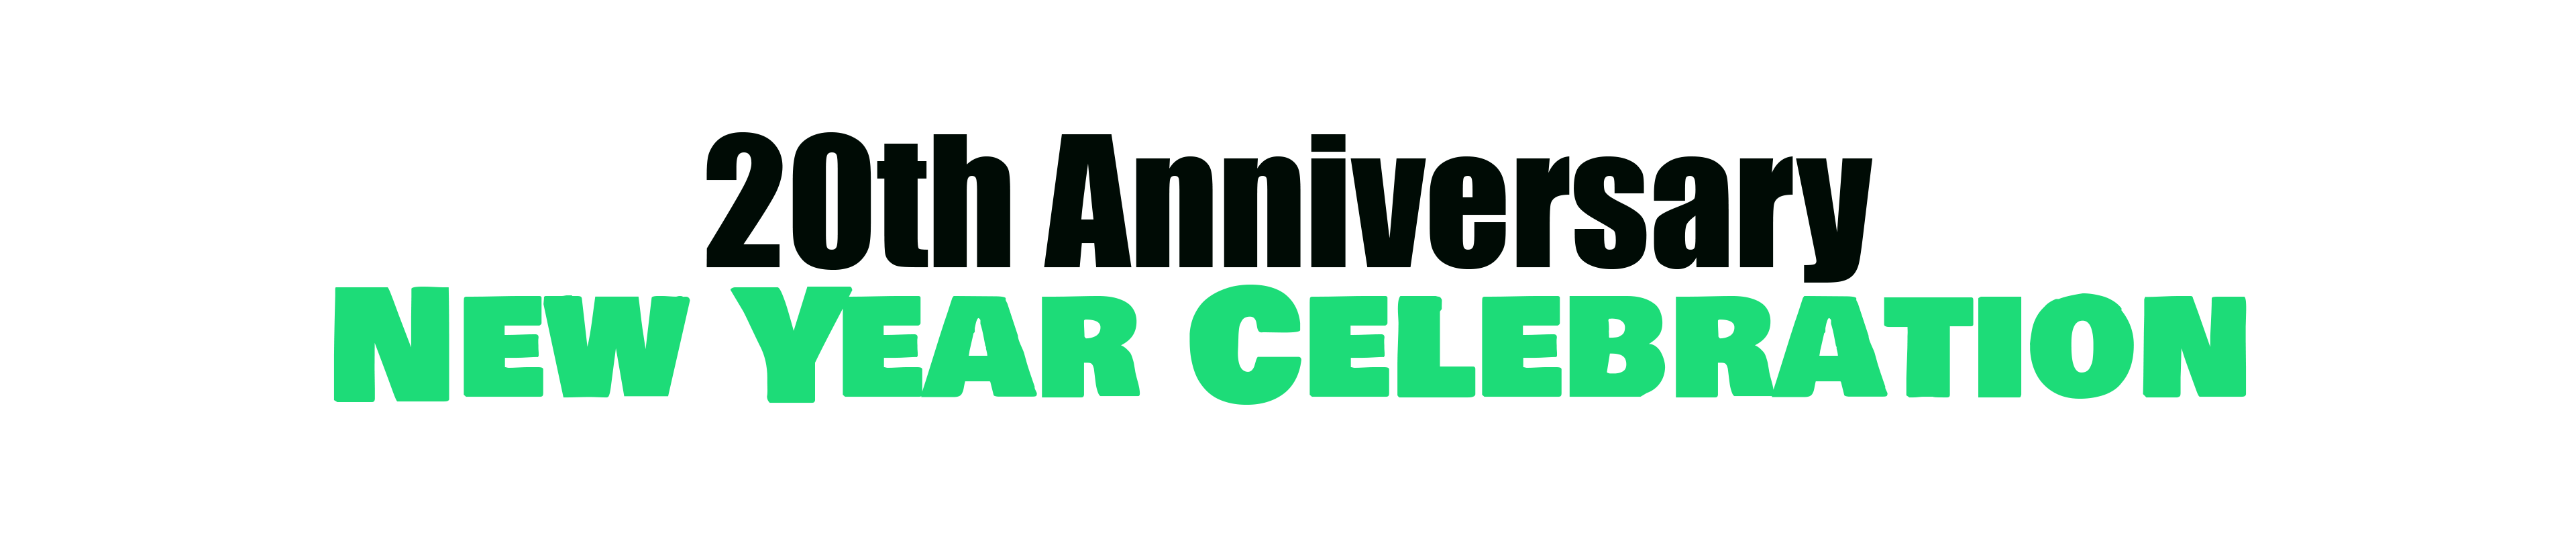 20th-anniversary-new-year-celebration-landing-page